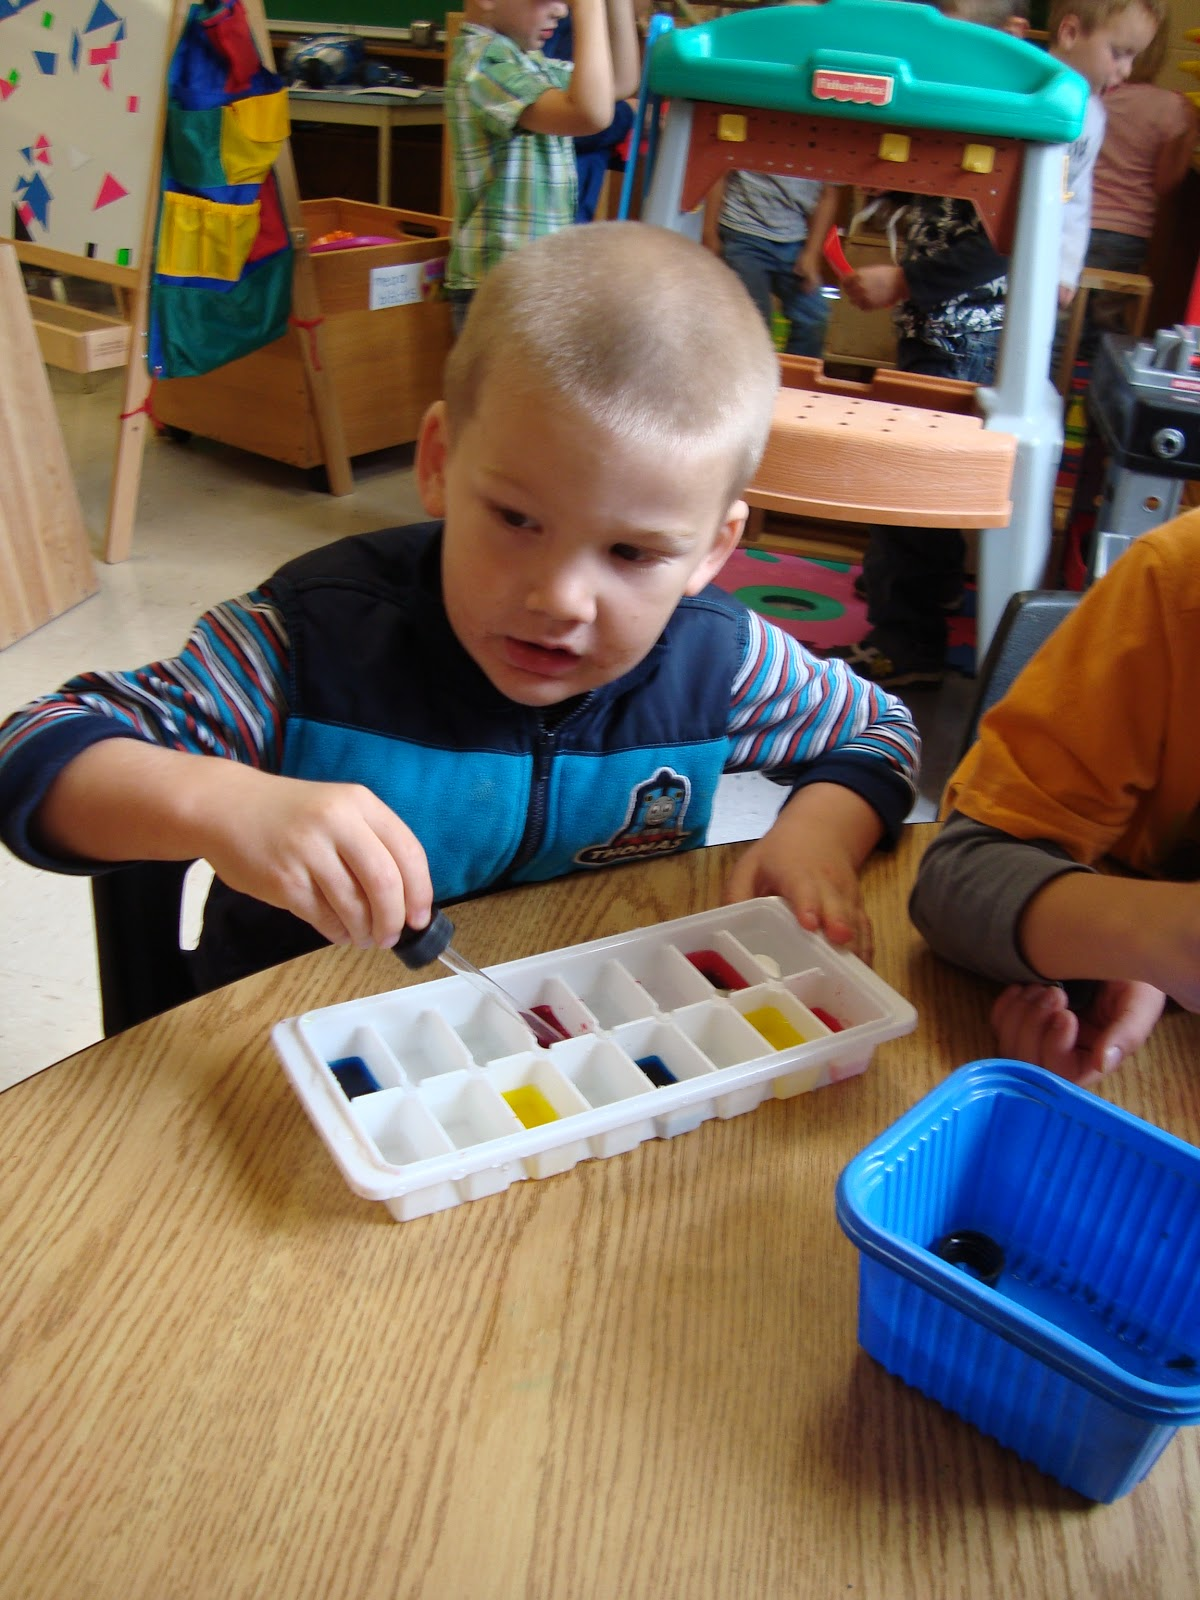 Colour activities babies - Colour Mixing Activities For Babies Coloured Water Always Catches Their Attention And Many Children Were